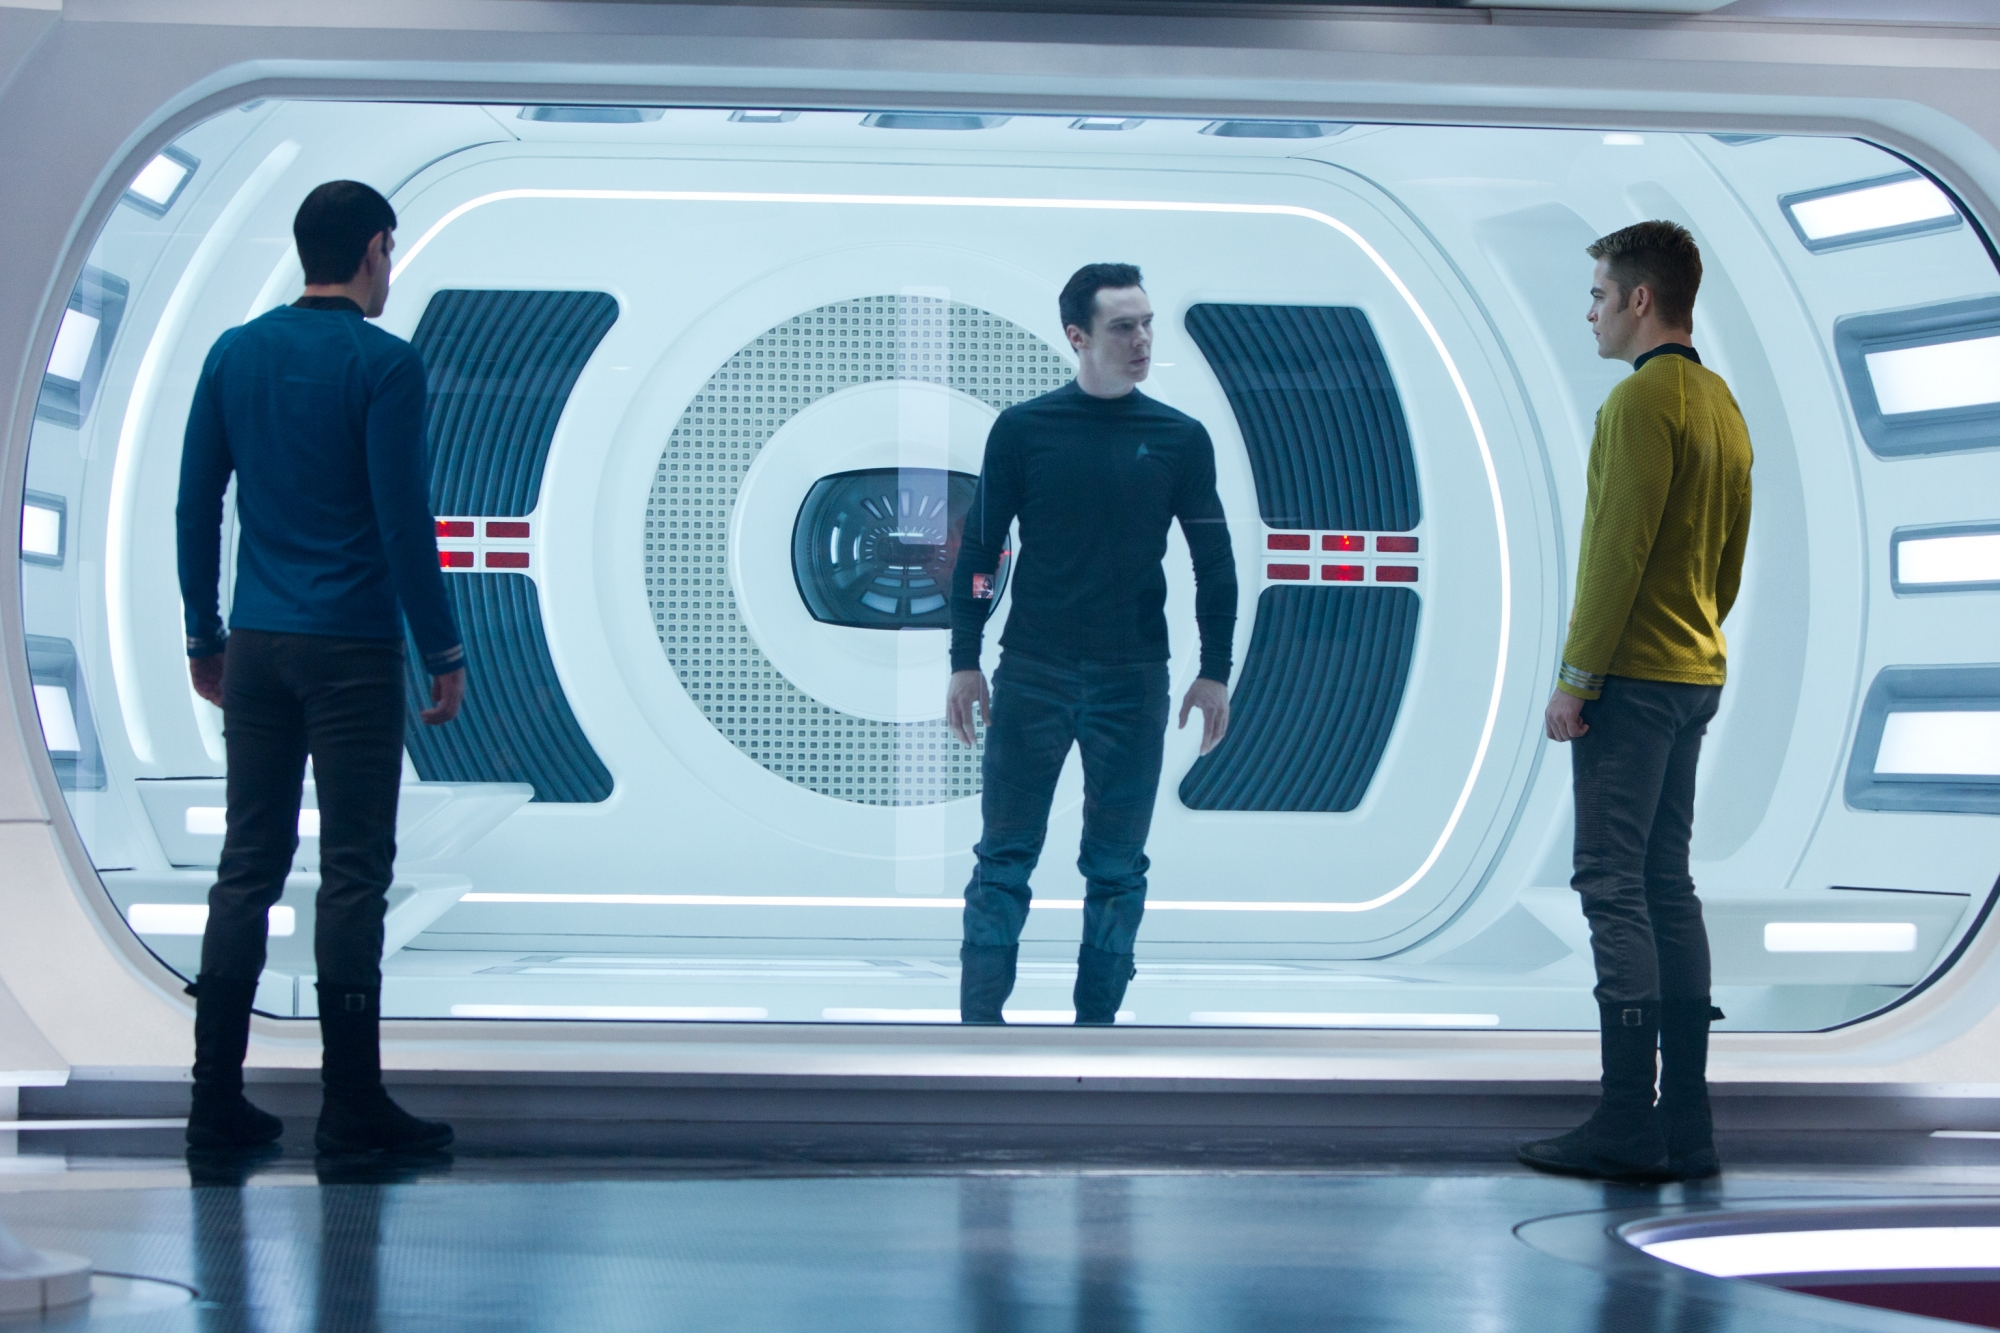 star trek into darkness1